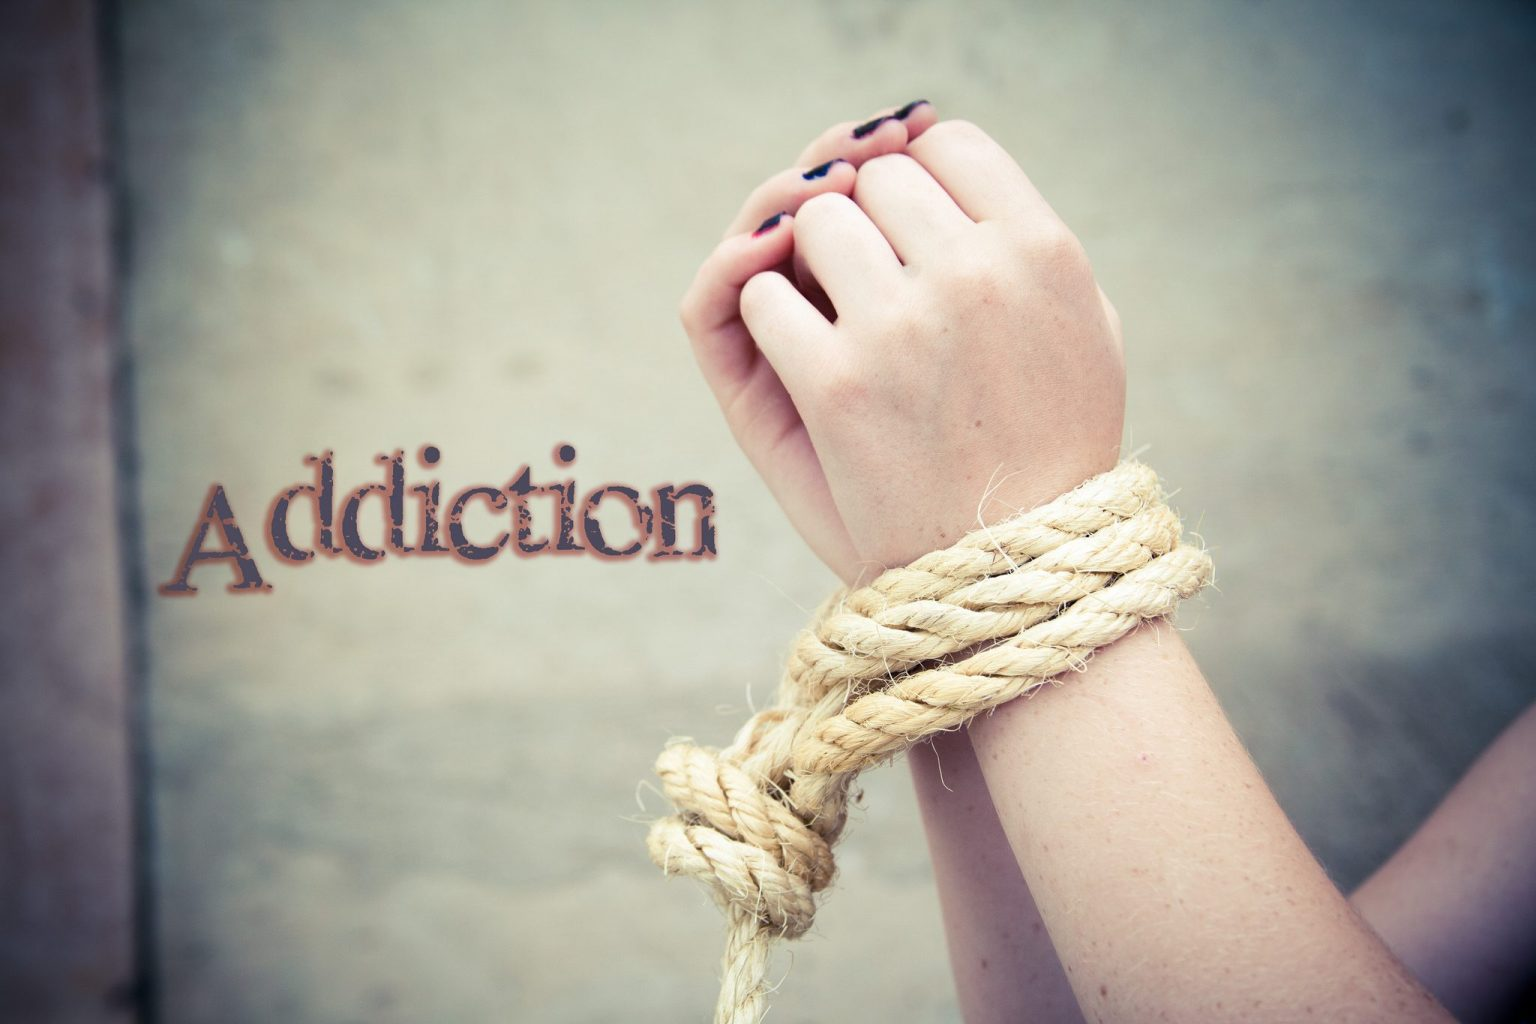 Image: hands tied by addiction